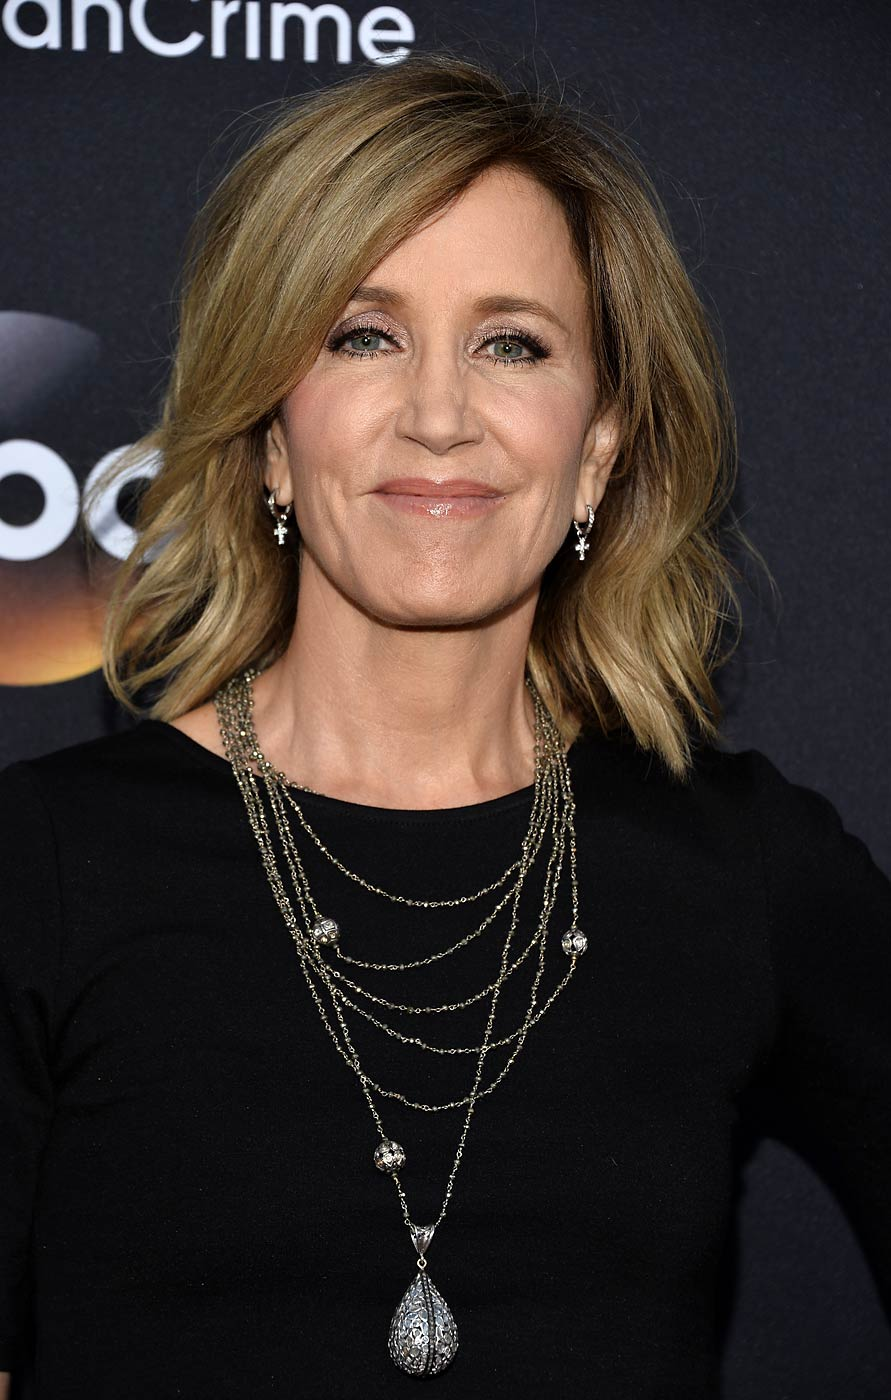 Felicity Huffman arrives at the American Crime premiere at the Ace Hotel on Feb. 28, 2015 in Los Angeles, Calif.